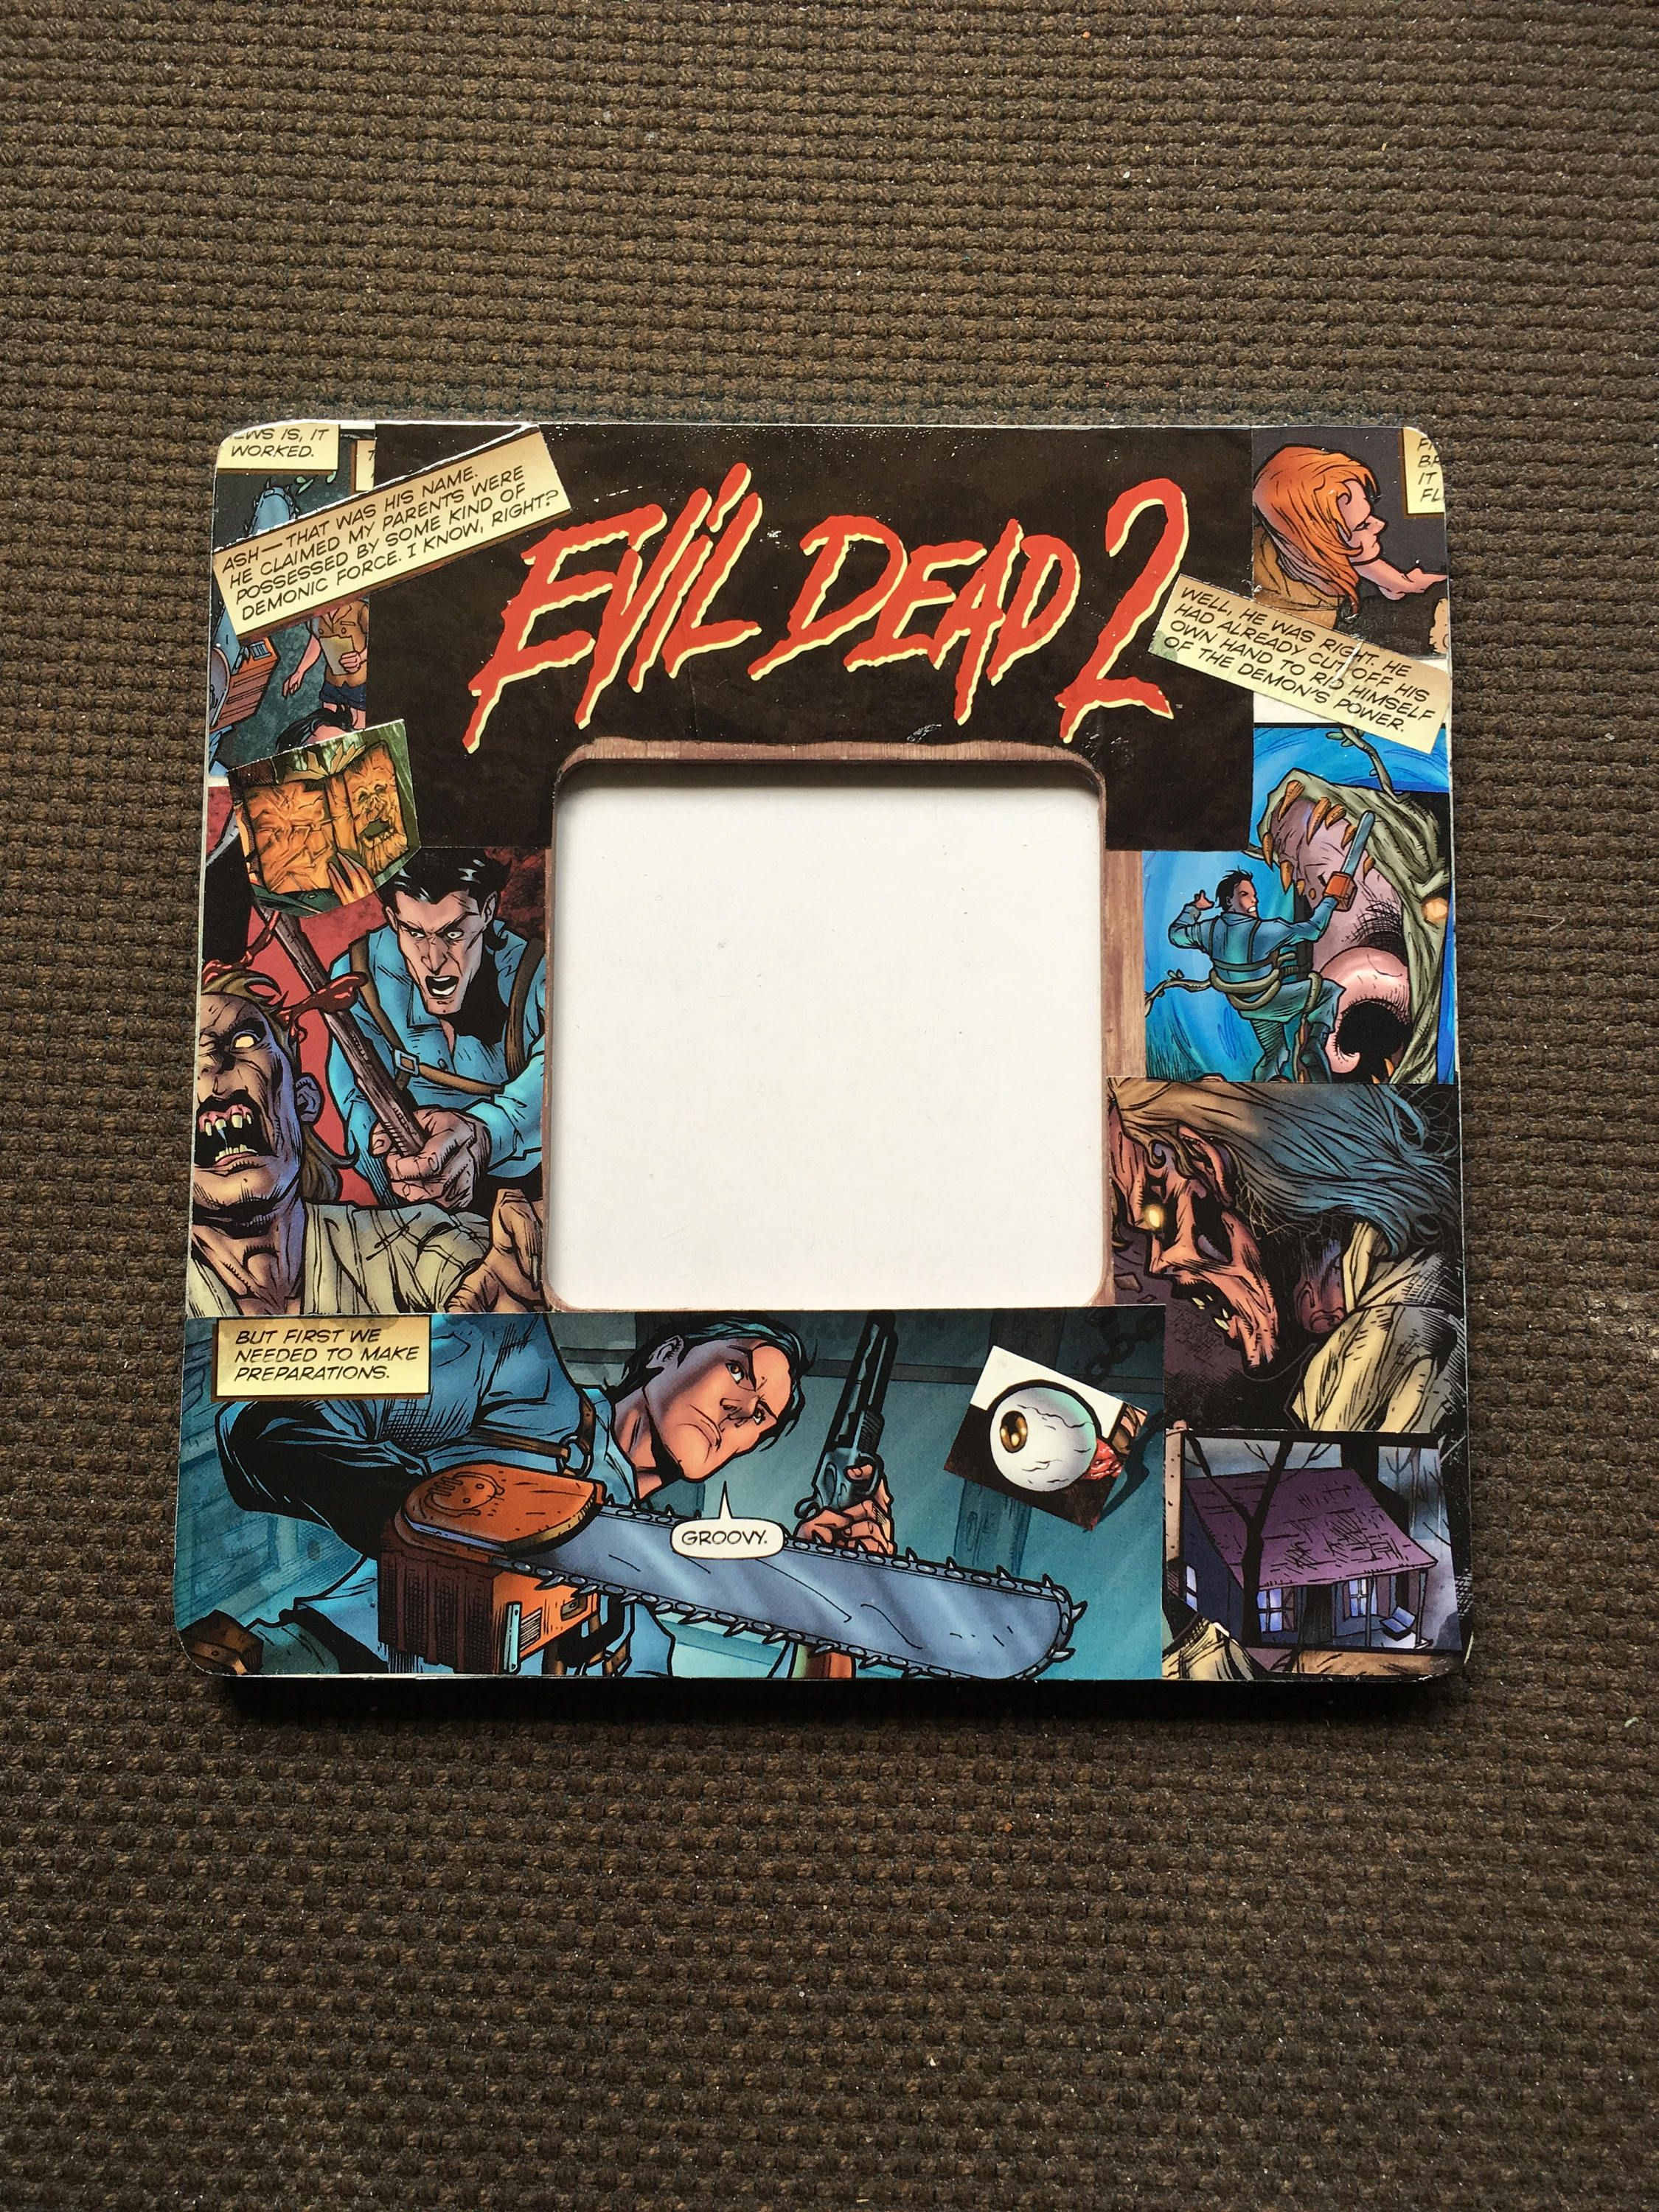 Evil dead 2 comic themed square decoupage picture frame by little1 evil dead 2 comic themed square decoupage picture frame by little1 on etsy jeuxipadfo Image collections